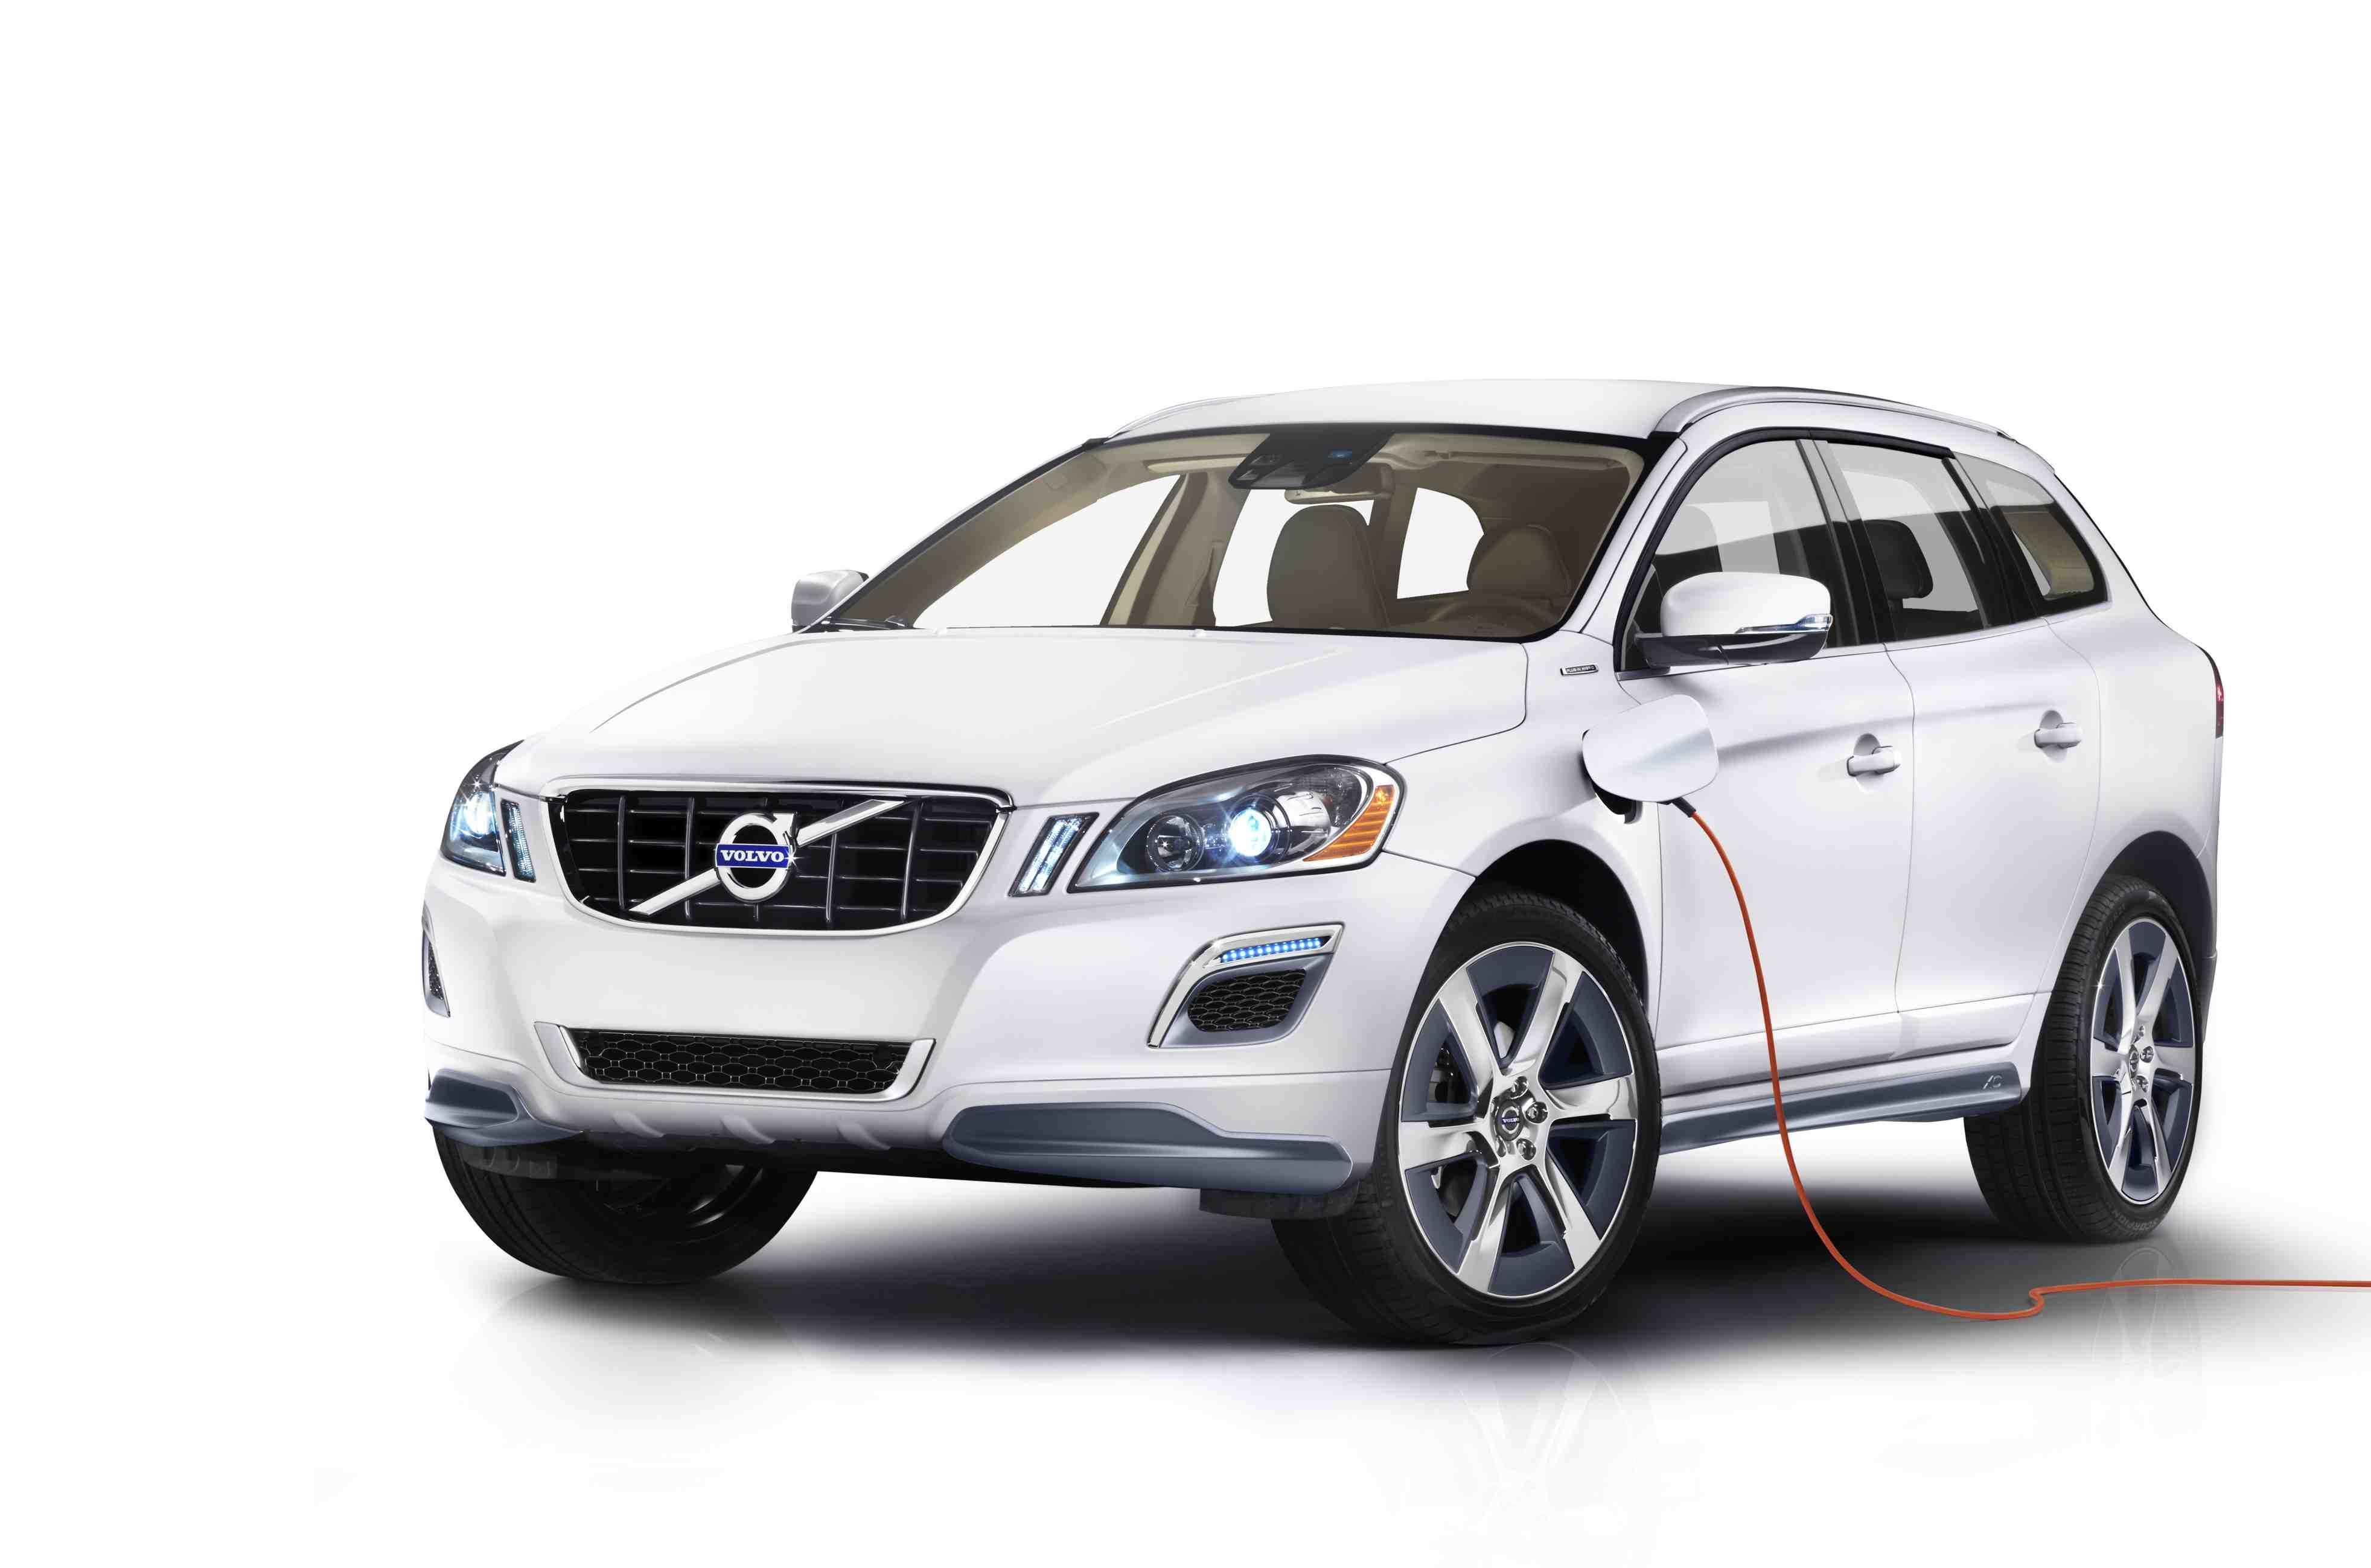 tn nashville lease volvo htm for price new tennessee awd stock momentum sale suv